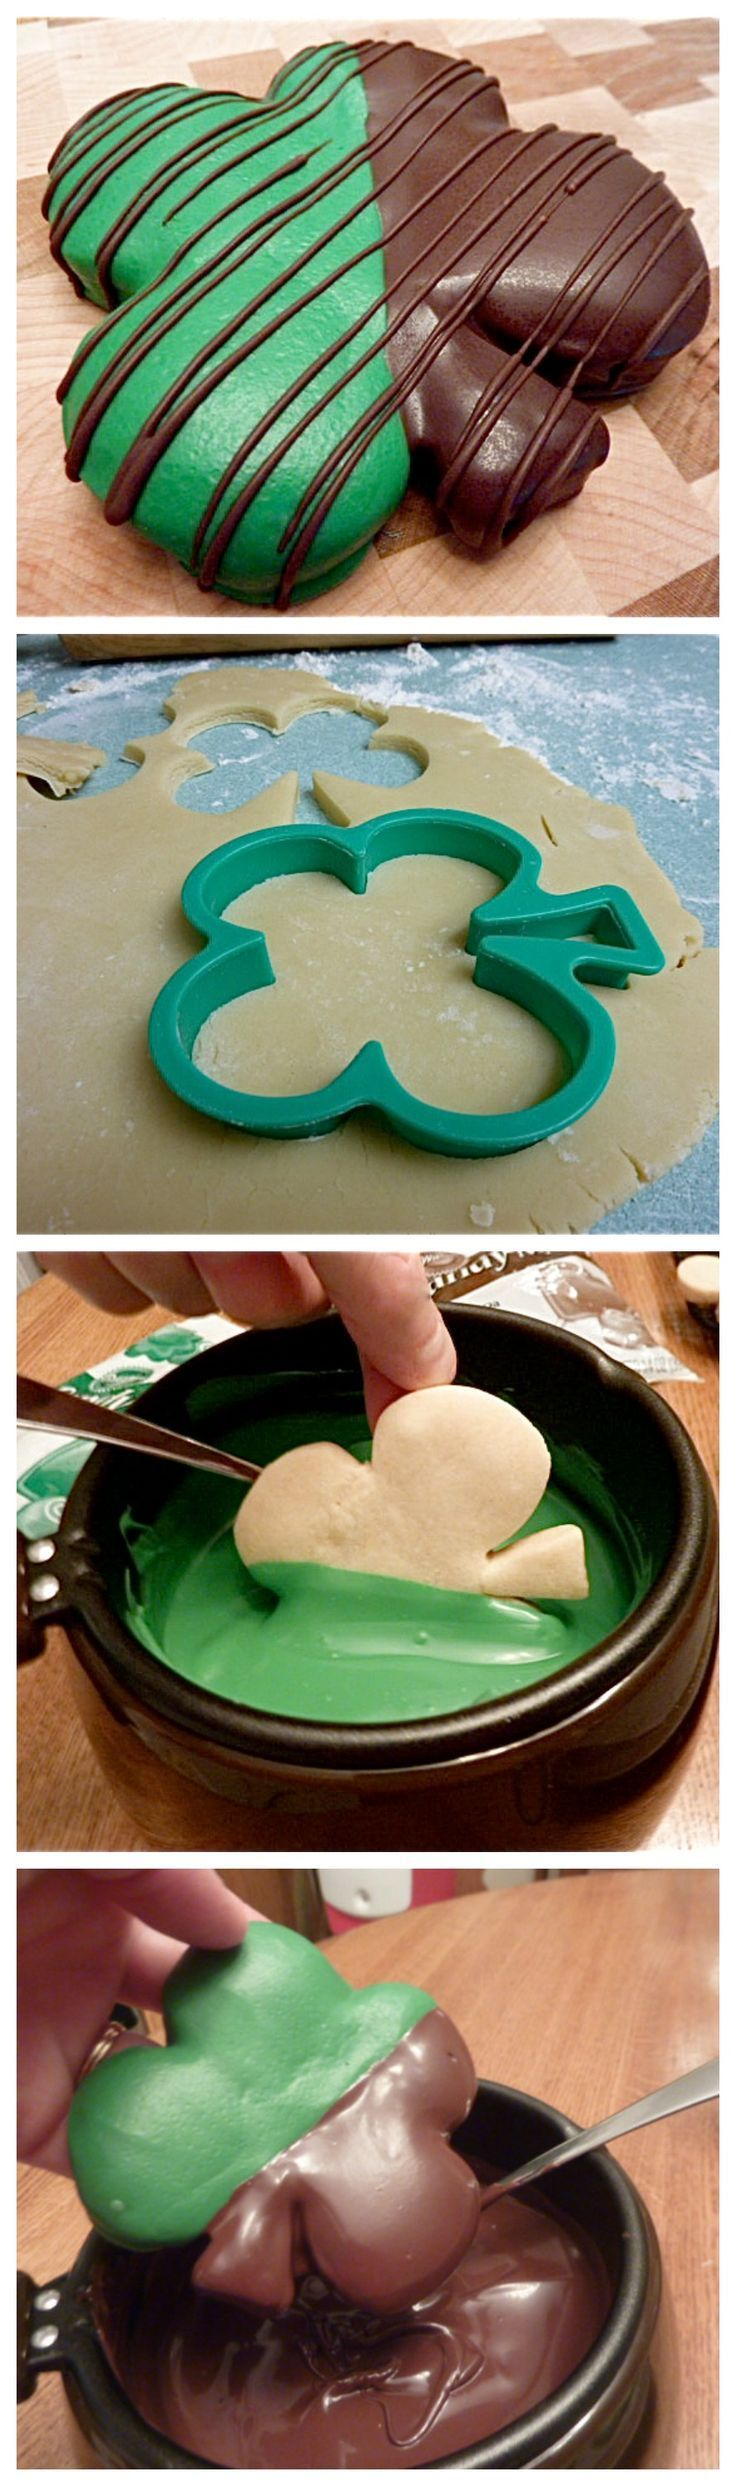 St. Patrick's Day Chocolate Covered Four-Leaf Clover cookies cookie recipes party ideas st patricks day shamrock st patricks day ideas st patrick's day st patricks day recipes